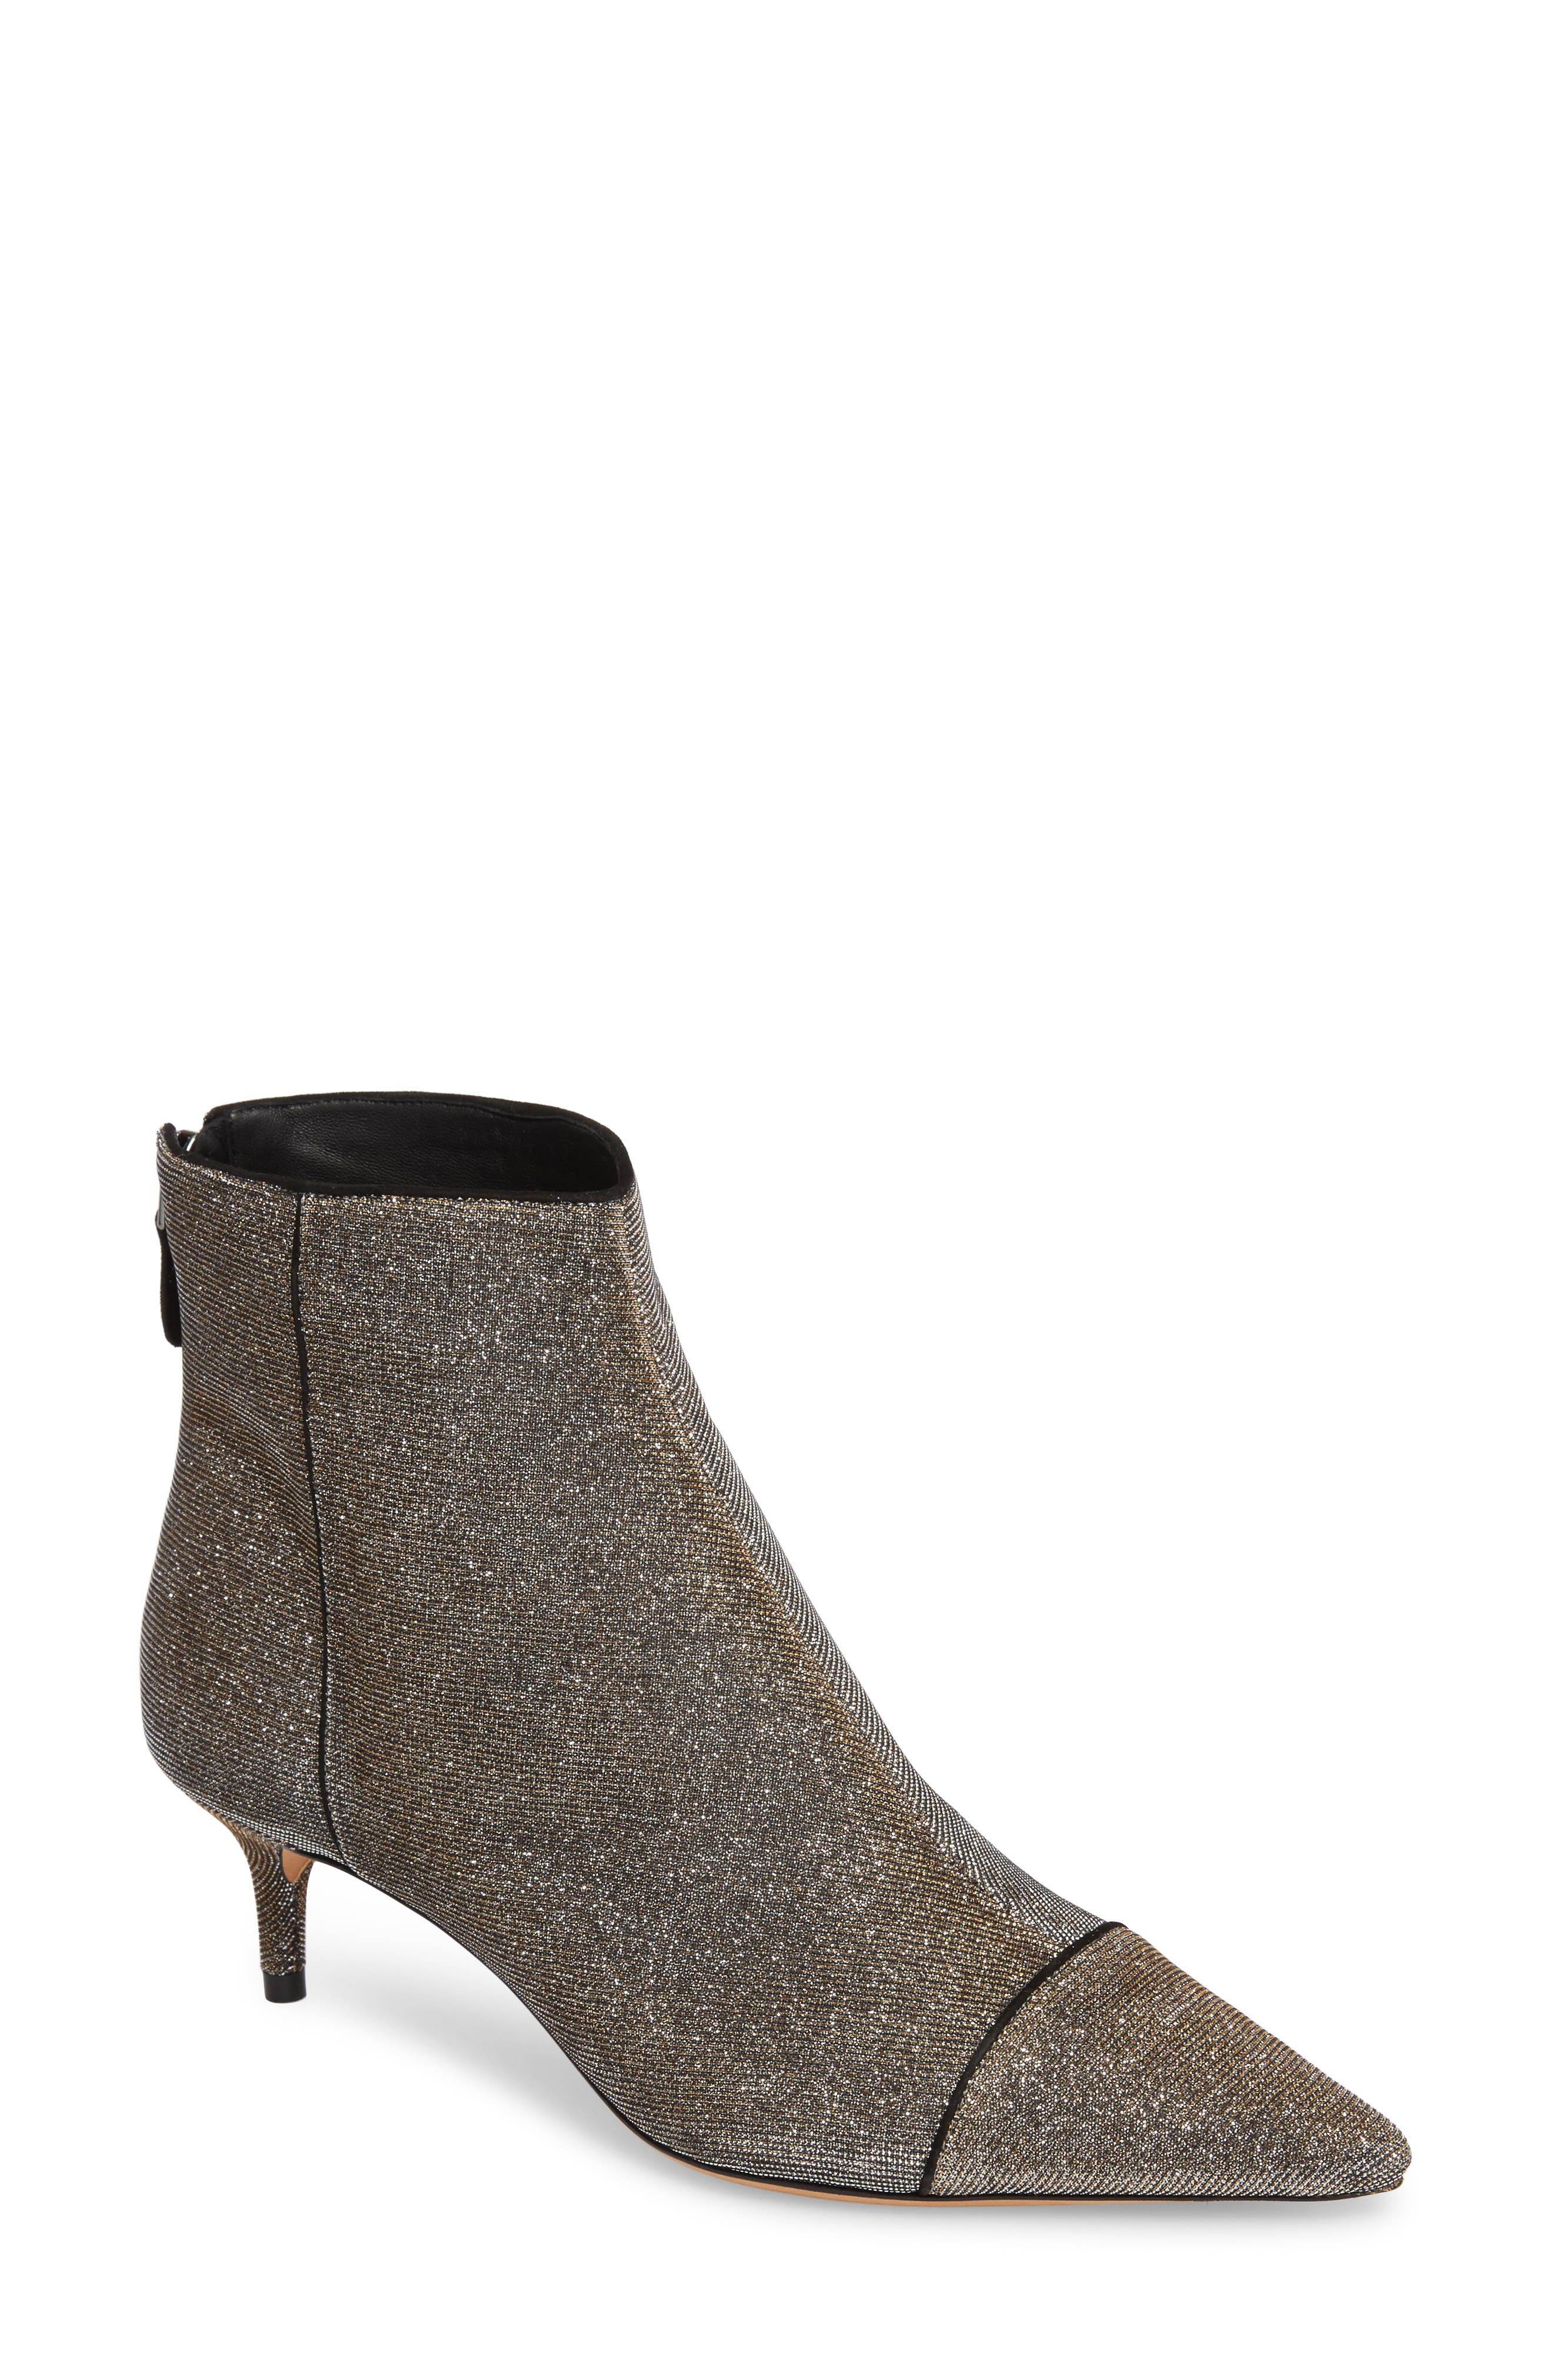 Main Image - Alexandre Birman Kittie Pointy Toe Bootie (Women)